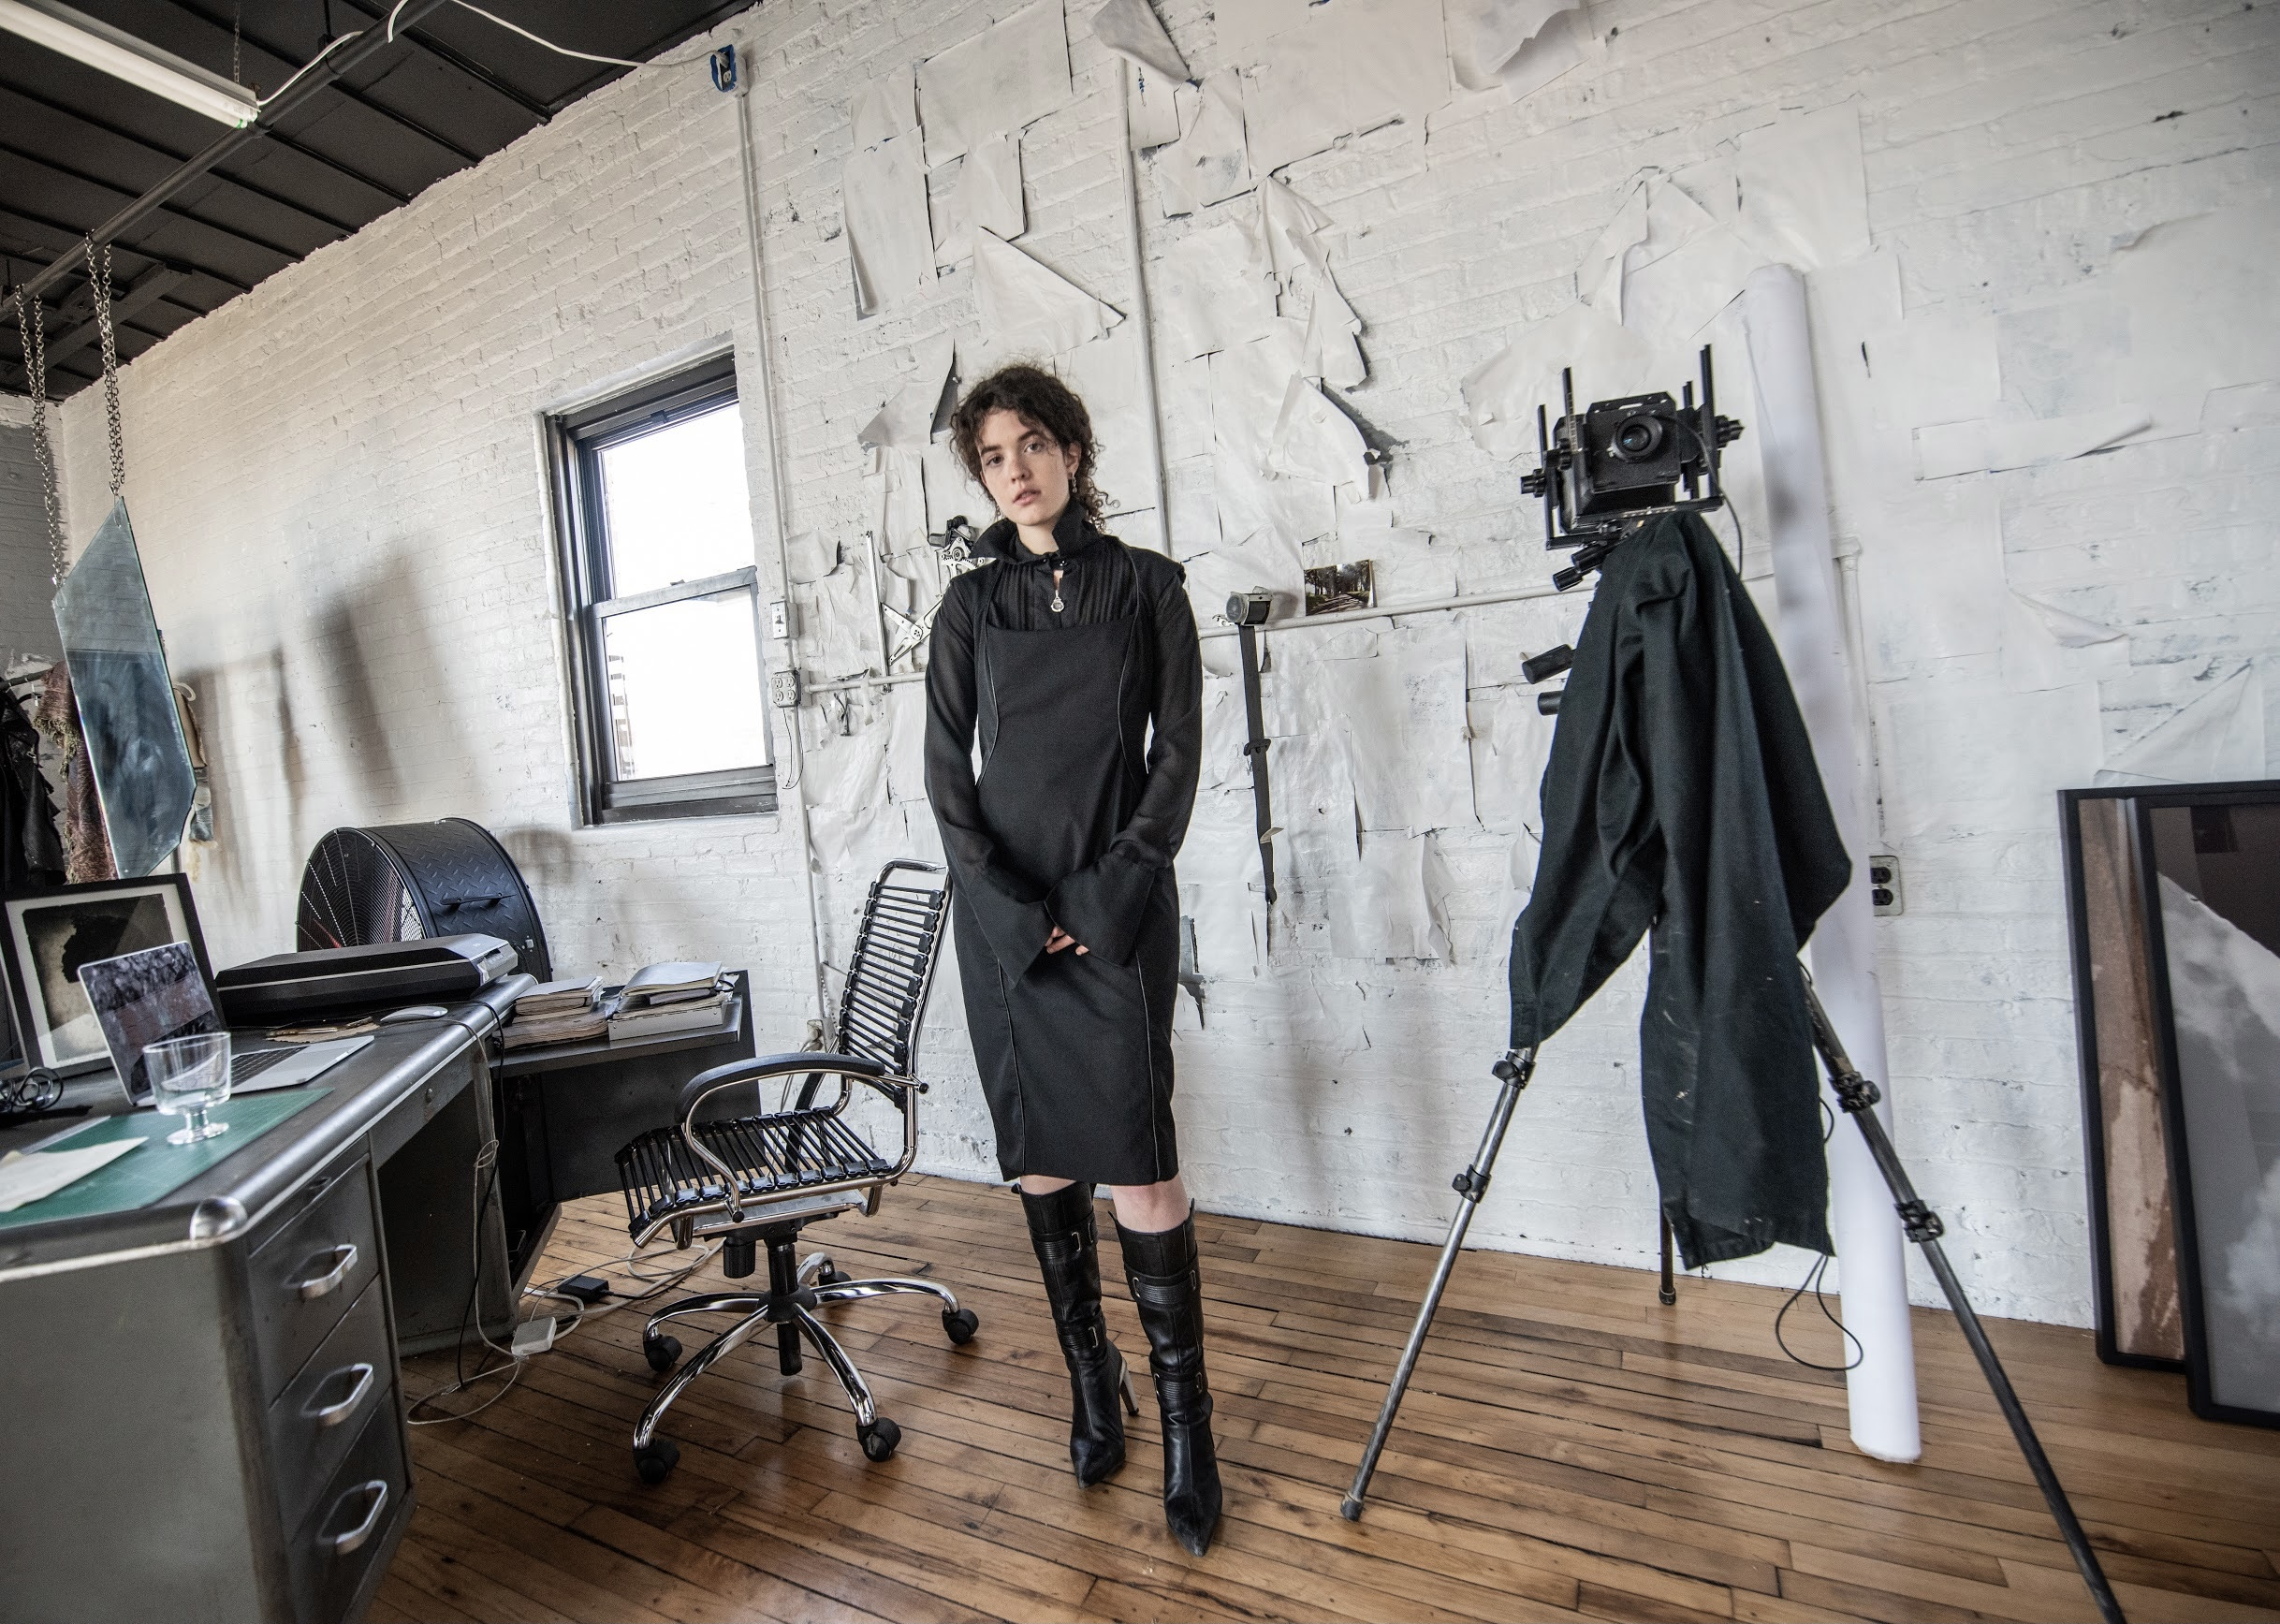 Image: A photo of Madeline Hampton in her apartment/studio. She wears a black dress and black boots and looks forward at the viewer. On the lefthand side of the photo is a window and a desk with various items sitting on top. On the righthand side is a camera on a tripod. Photo by Edvette Wilson-Jones.